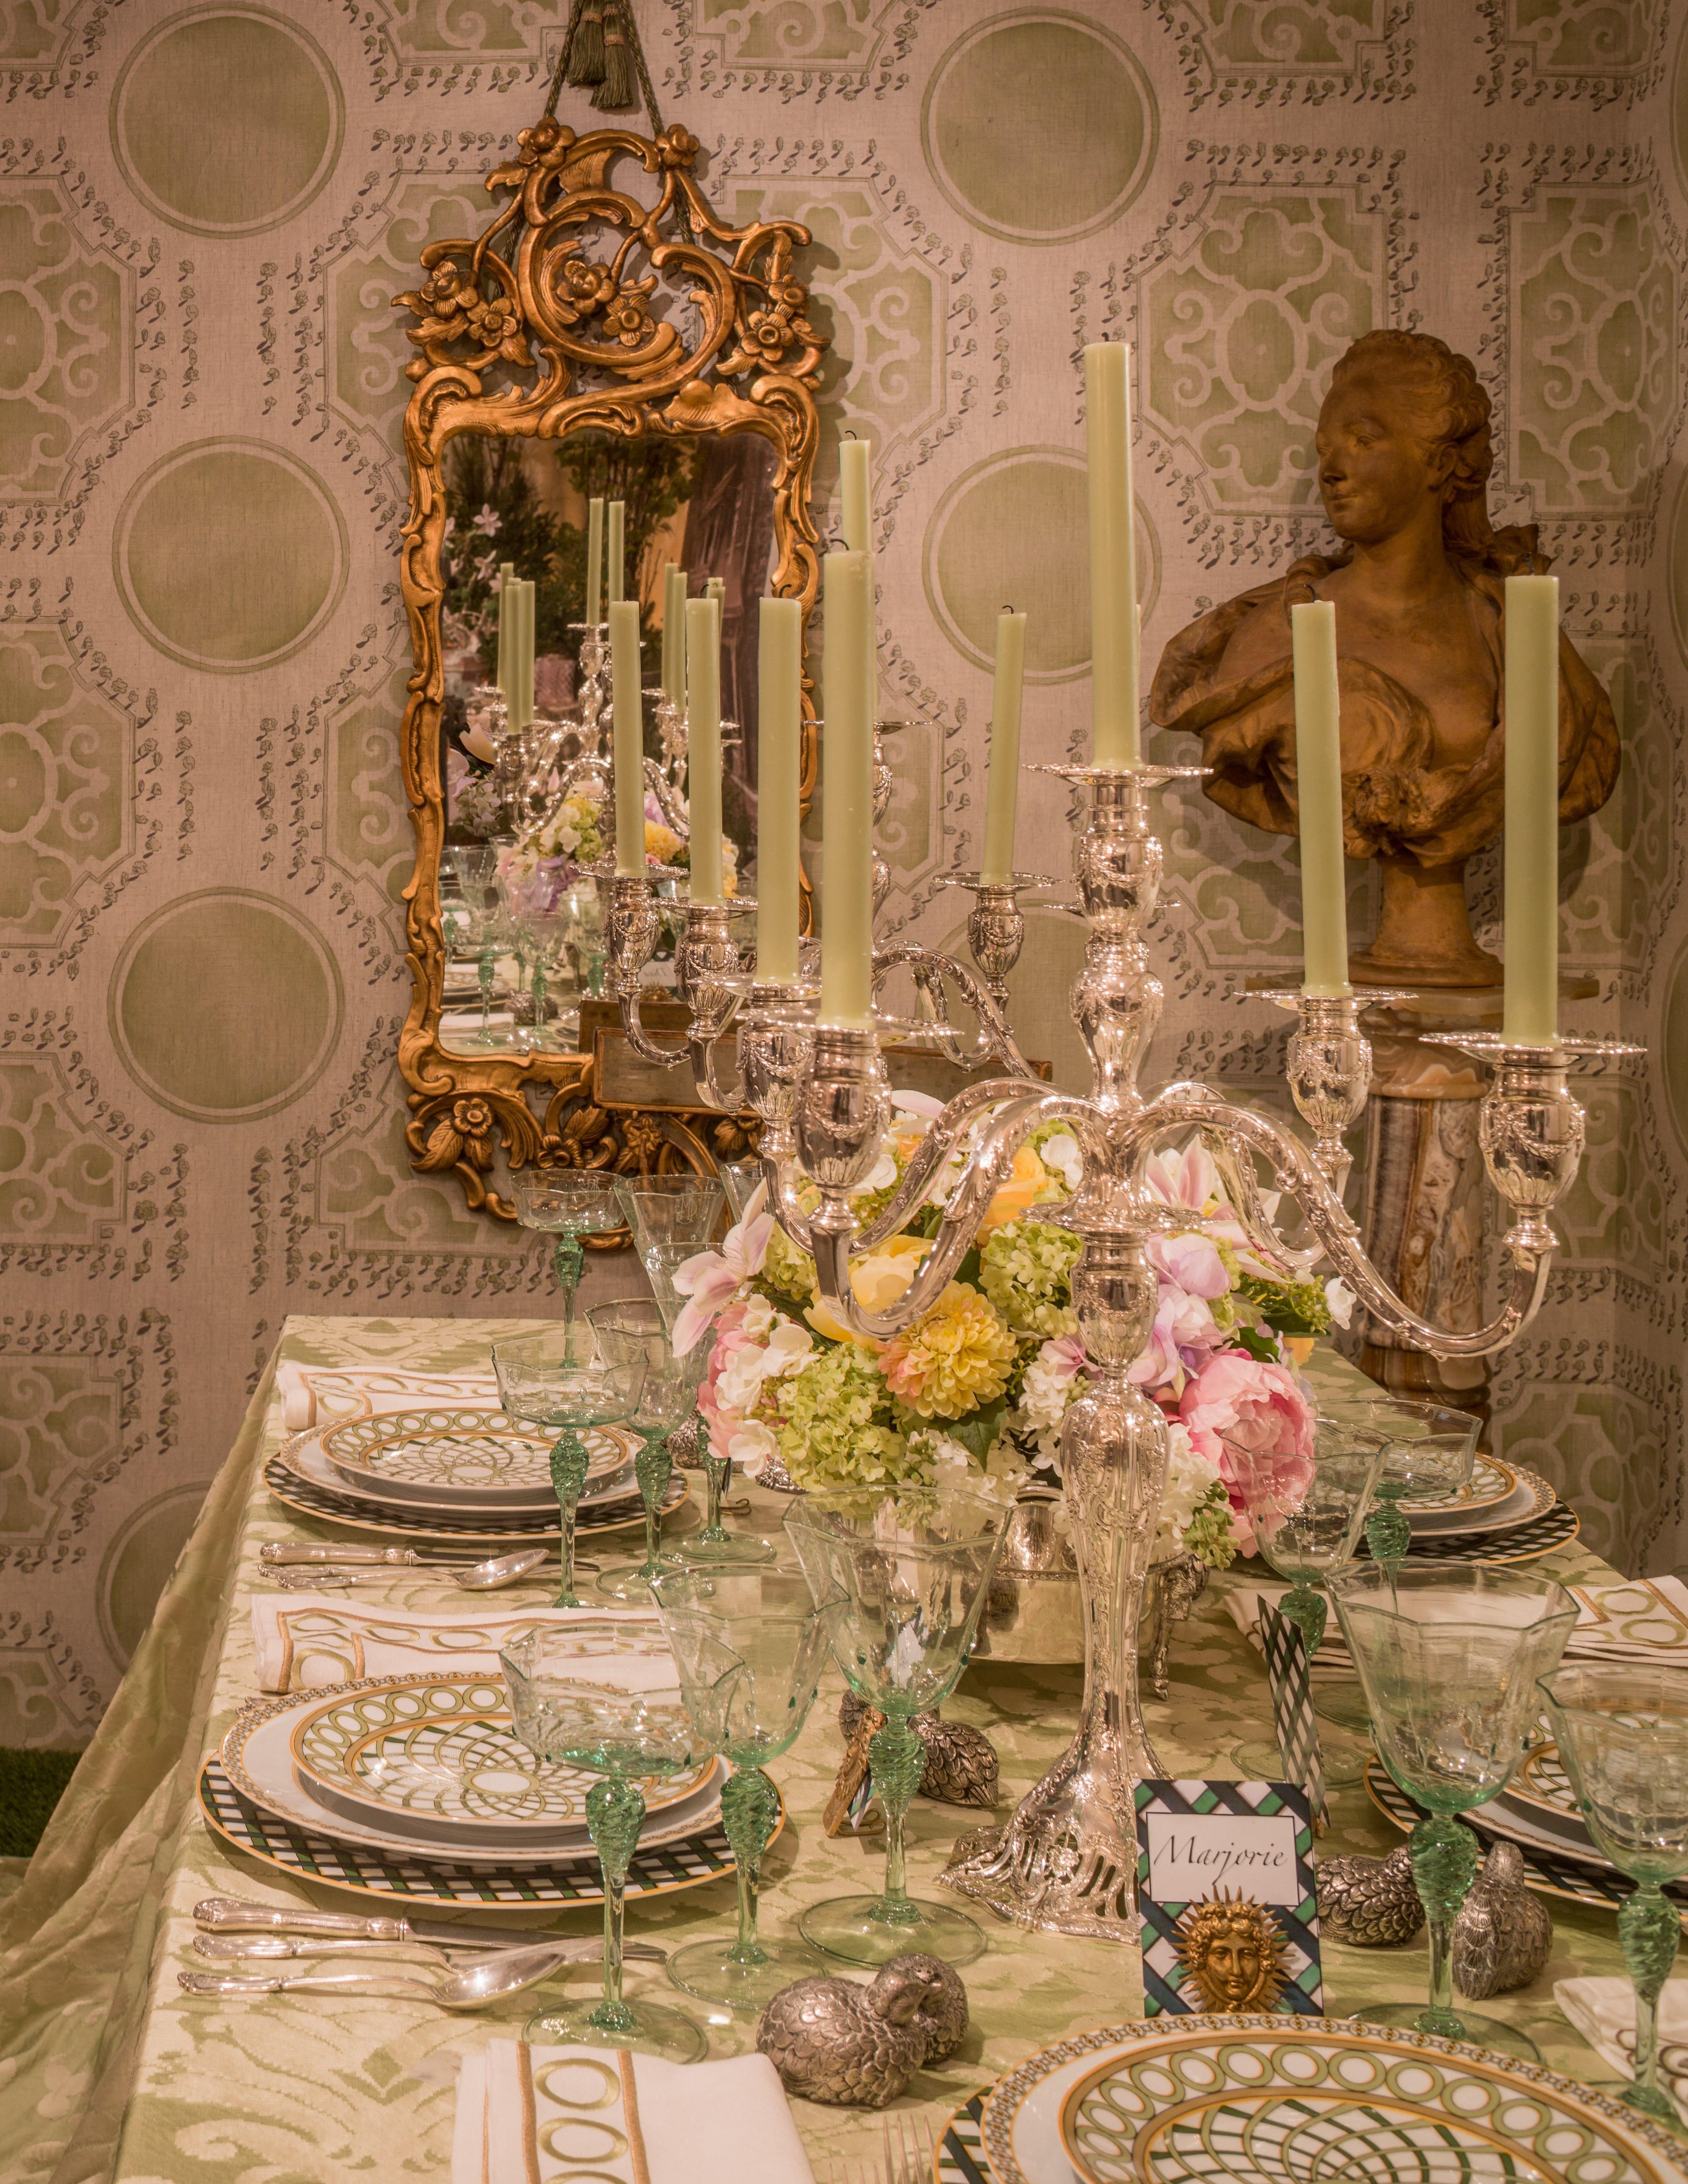 """Corrigan's literal centerpiece is a pair of breathtaking silver candelabras from Post's collection, around which he built a French garden scene. """"My inspiration was the gardens here at Hillwood,"""" he explains. """"I love the greenhouse and the gardens, so I riffed on that using this new wallpaper I designed for Fromental inspired by the gardens at Versailles, handpainted on silk. On the ground I put AstroTurf, and the garden theme continued with my Jardin Français china for Royal Limoges."""" Corrigan added a personal touch to the tablescape by way of Murano glassware that his grandmother purchased on her Venetian honeymoon. It's the china, of all things, that gives Corrigan's setting the same balance of casual and chic for which Moss aimed: """"The best thing about these plates?"""" Corrigan asks, holding one up with a grin: """"They're the first fine china in the world with gold that you can put in the dishwasher and microwave! And I think that's so important because people have this beautiful china but they never use it because they can't dishwash it."""" Marjorie would certainly have been impressed."""